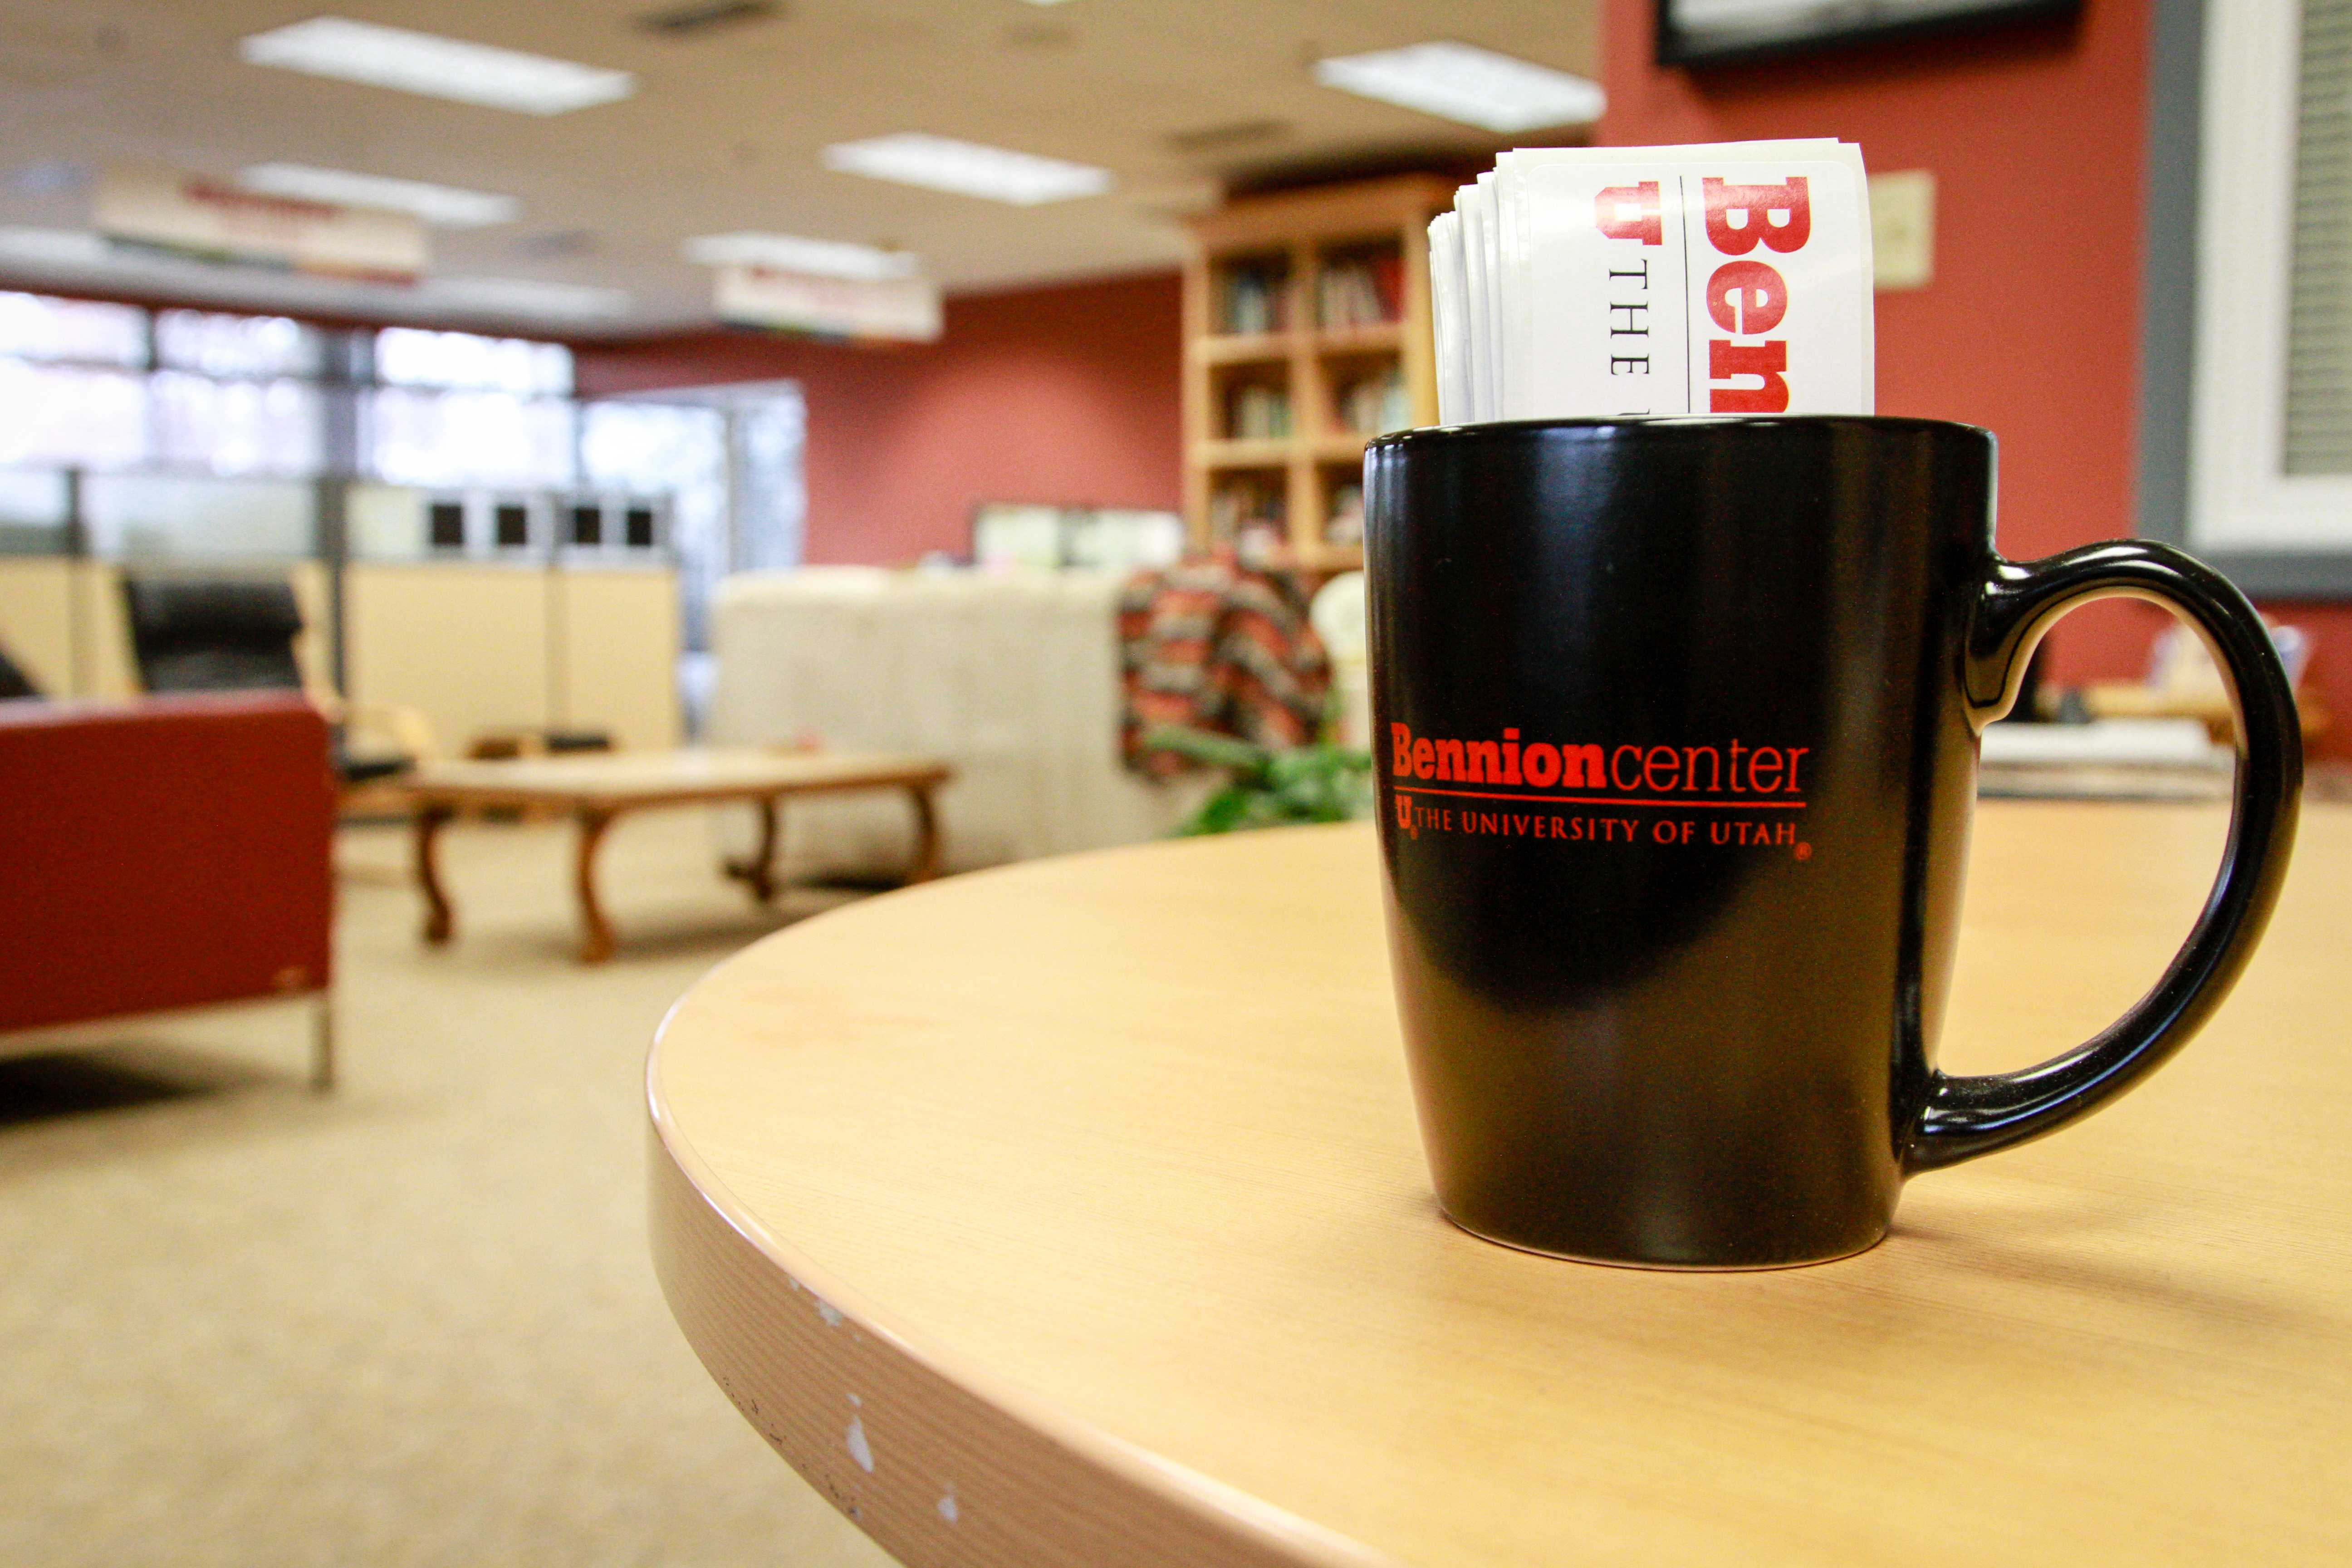 The Bennion Center in the Olpin Student Union. Chronicle archives.